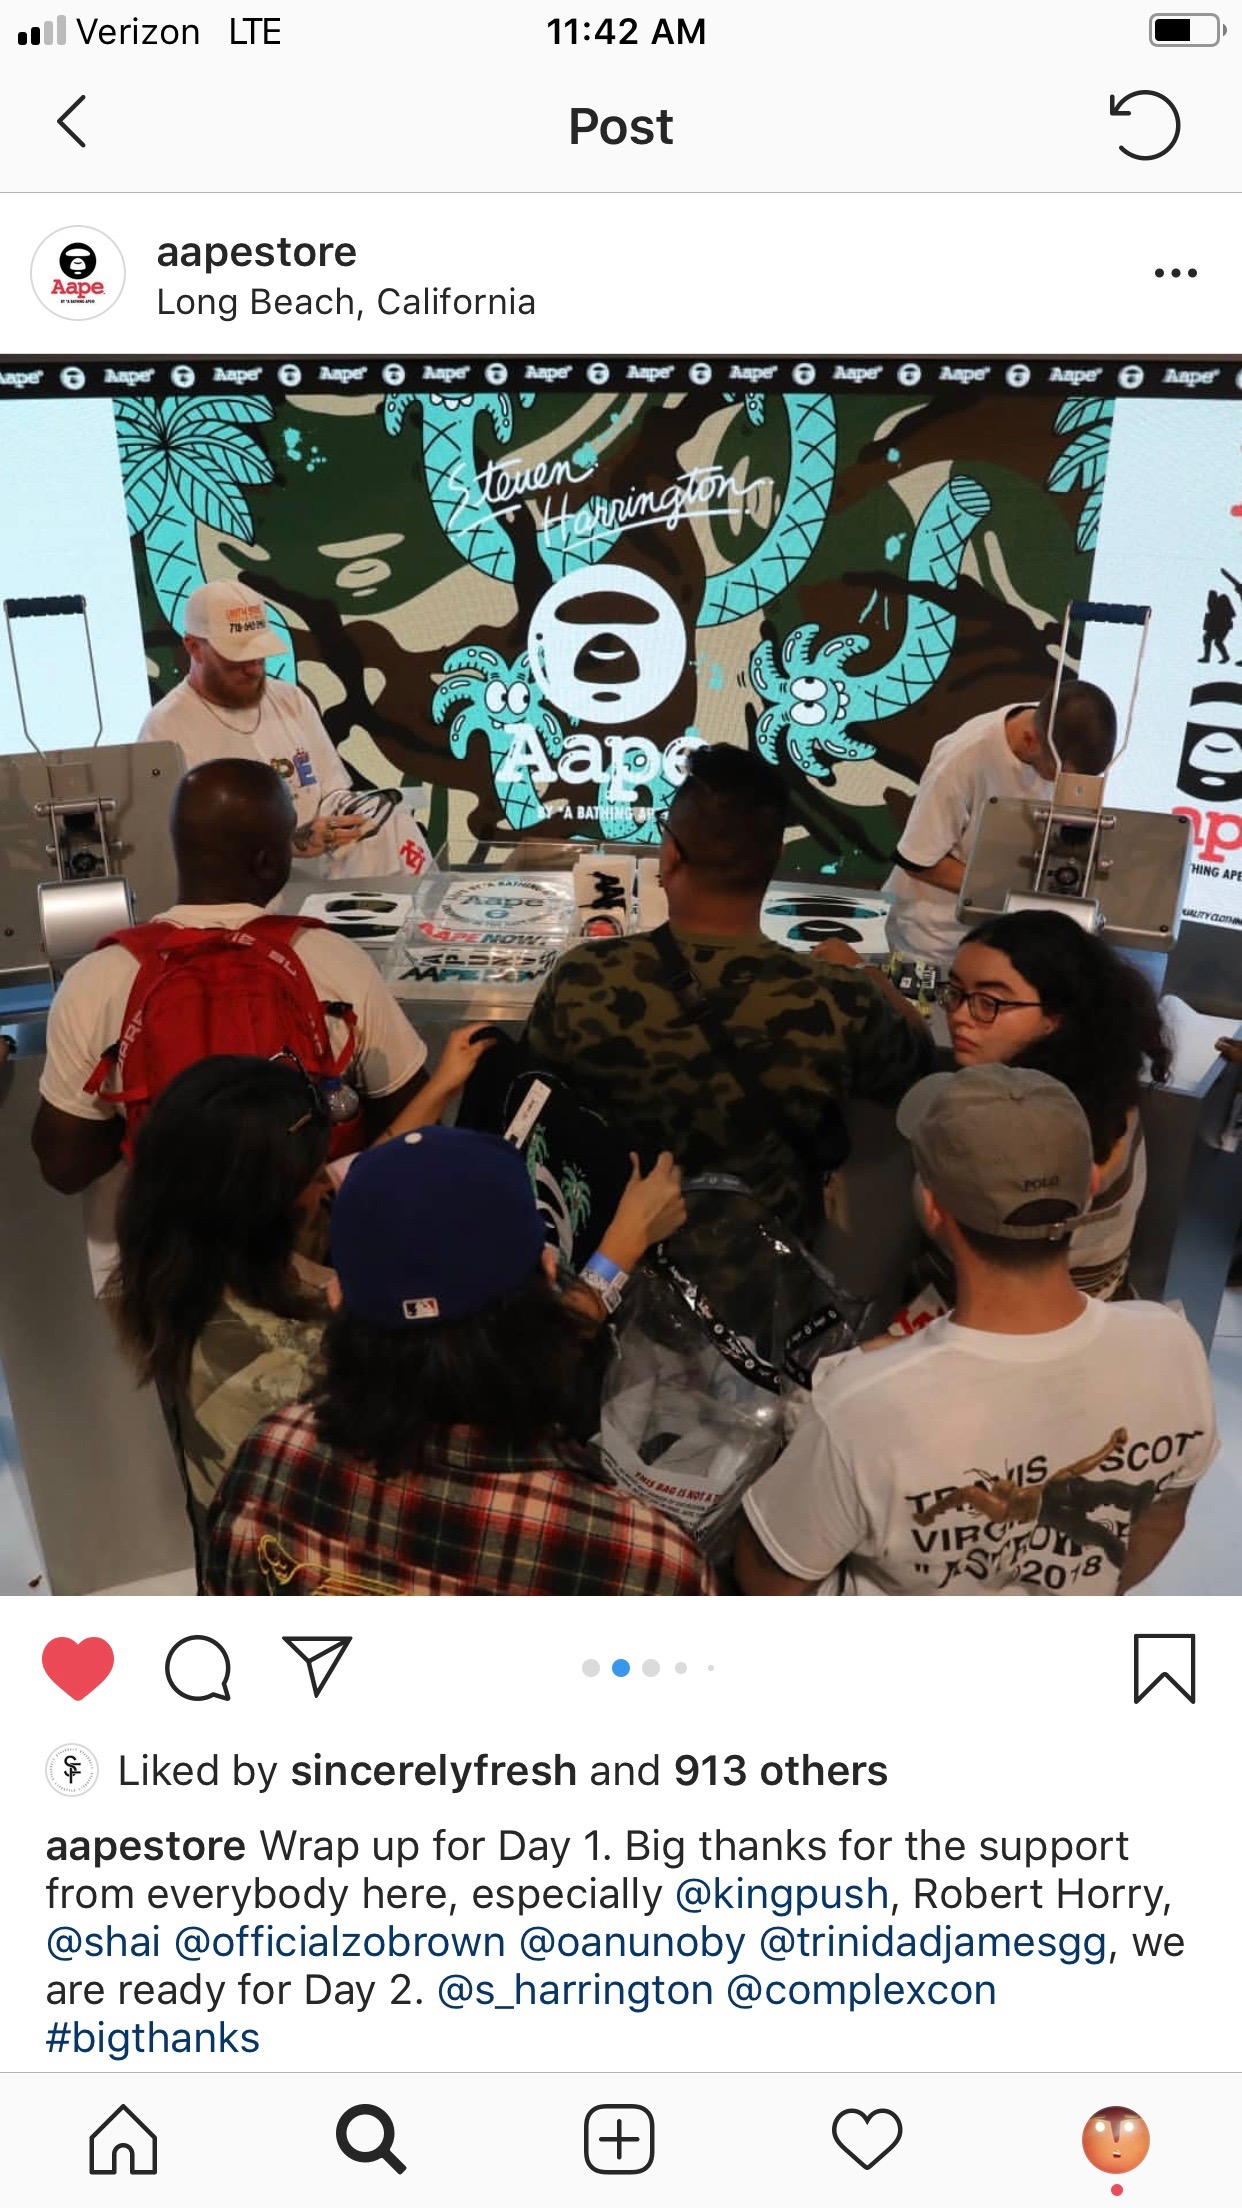 AAPE BOOTH - DAY 1 COMPLEX CON